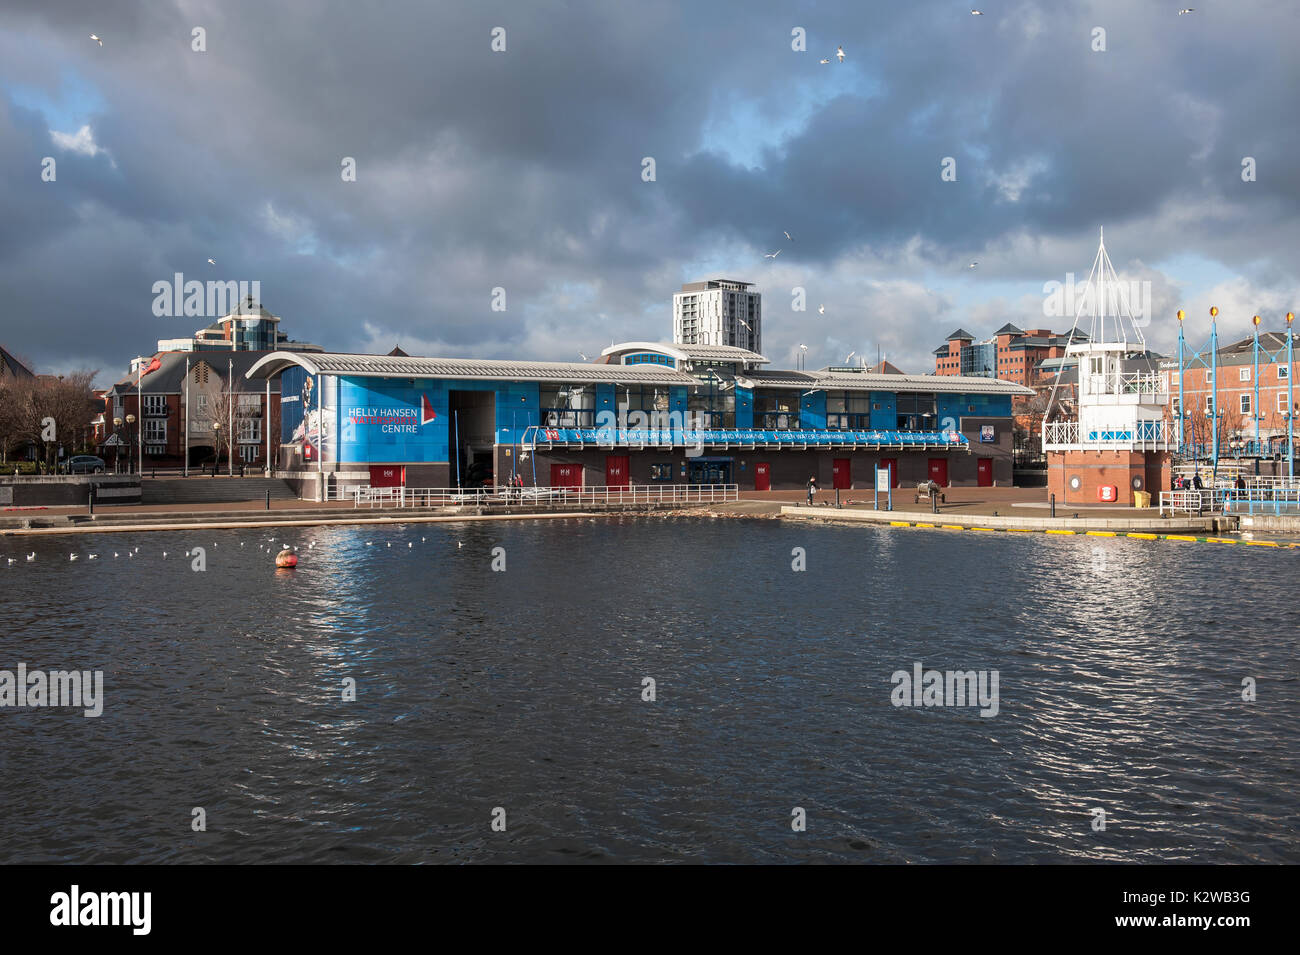 Salford Watersports Centre, Salford Quays - Stock Image